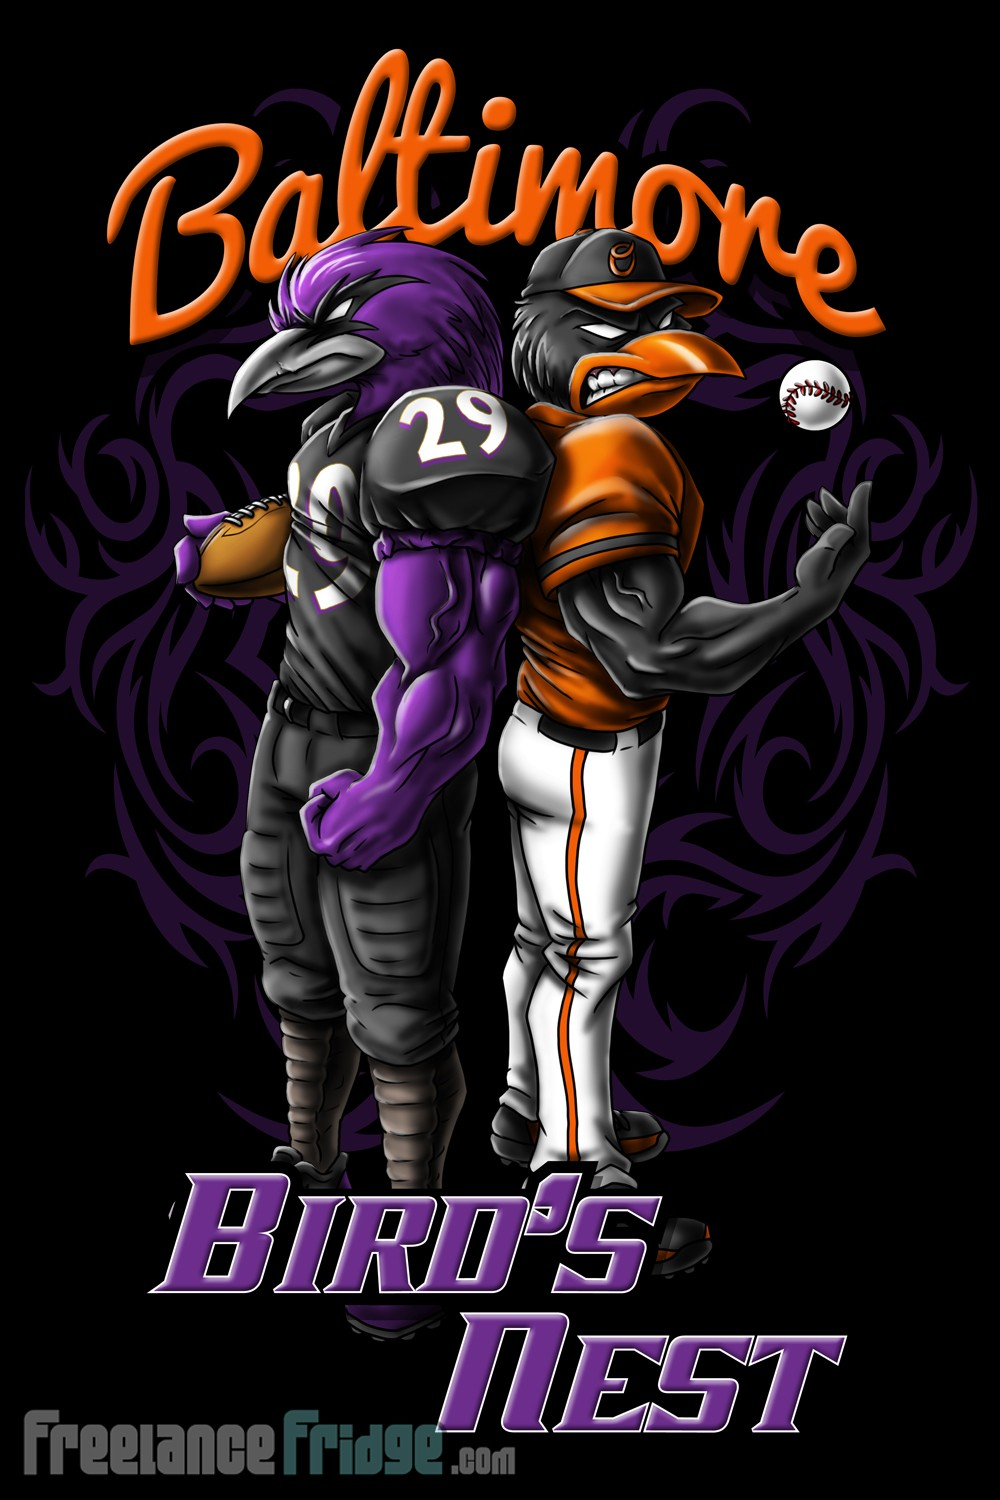 Baltimore Ravens and Orioles T-Shirt Design : Freelance Fridge ...